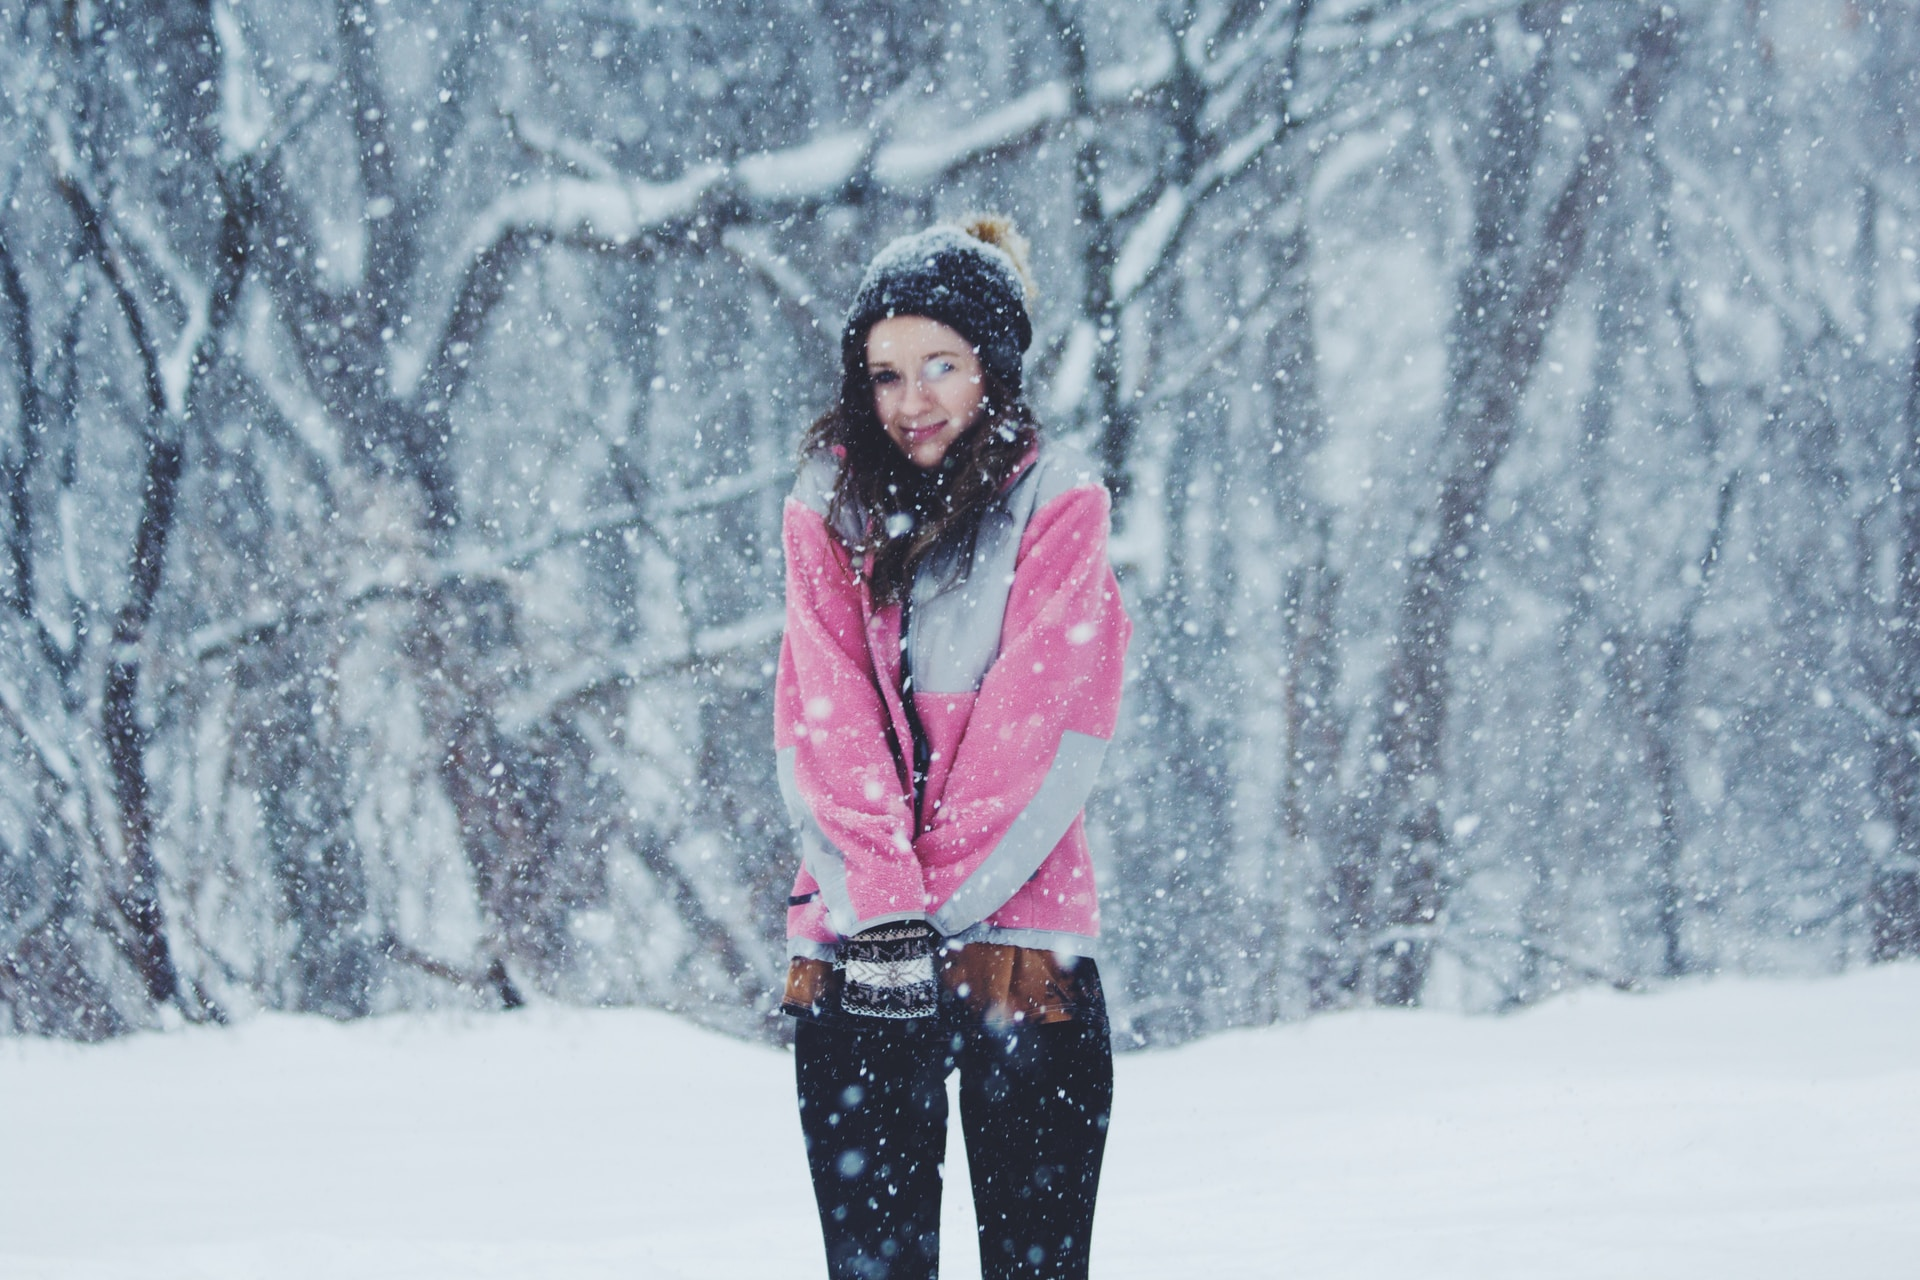 woman wearing pink jacket standing on snow ground